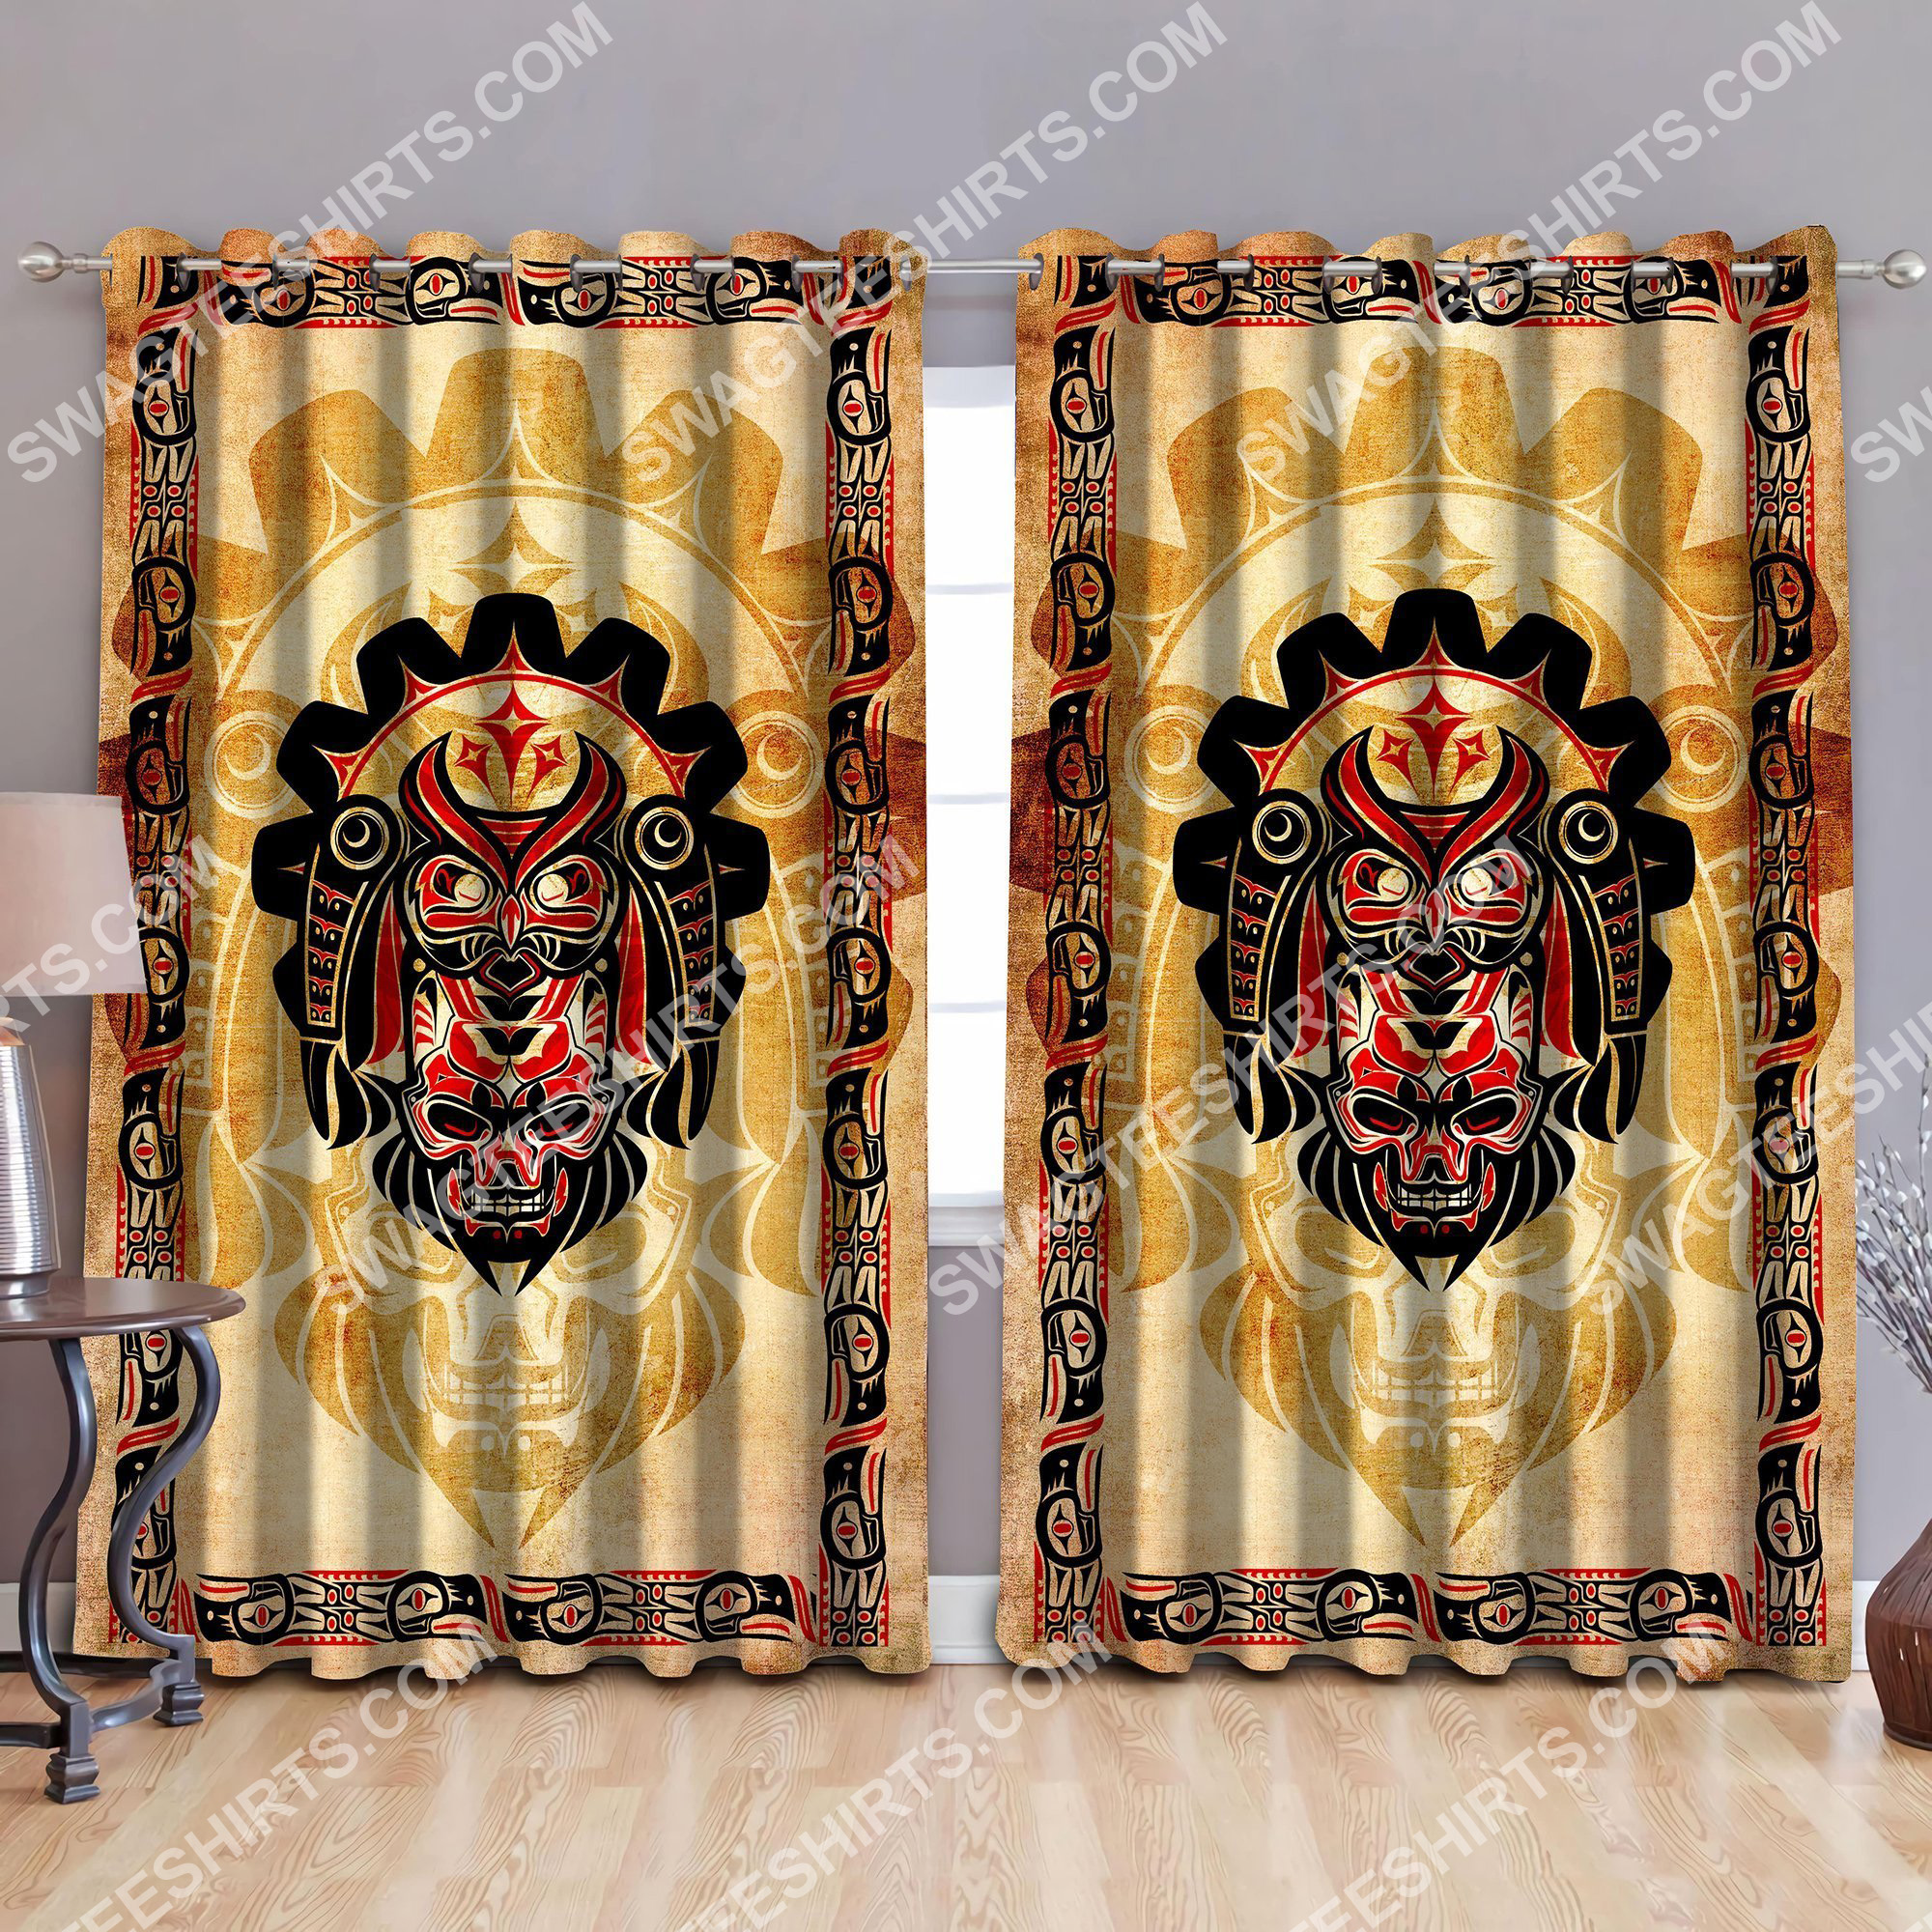 haida indians all over printed window curtains 3